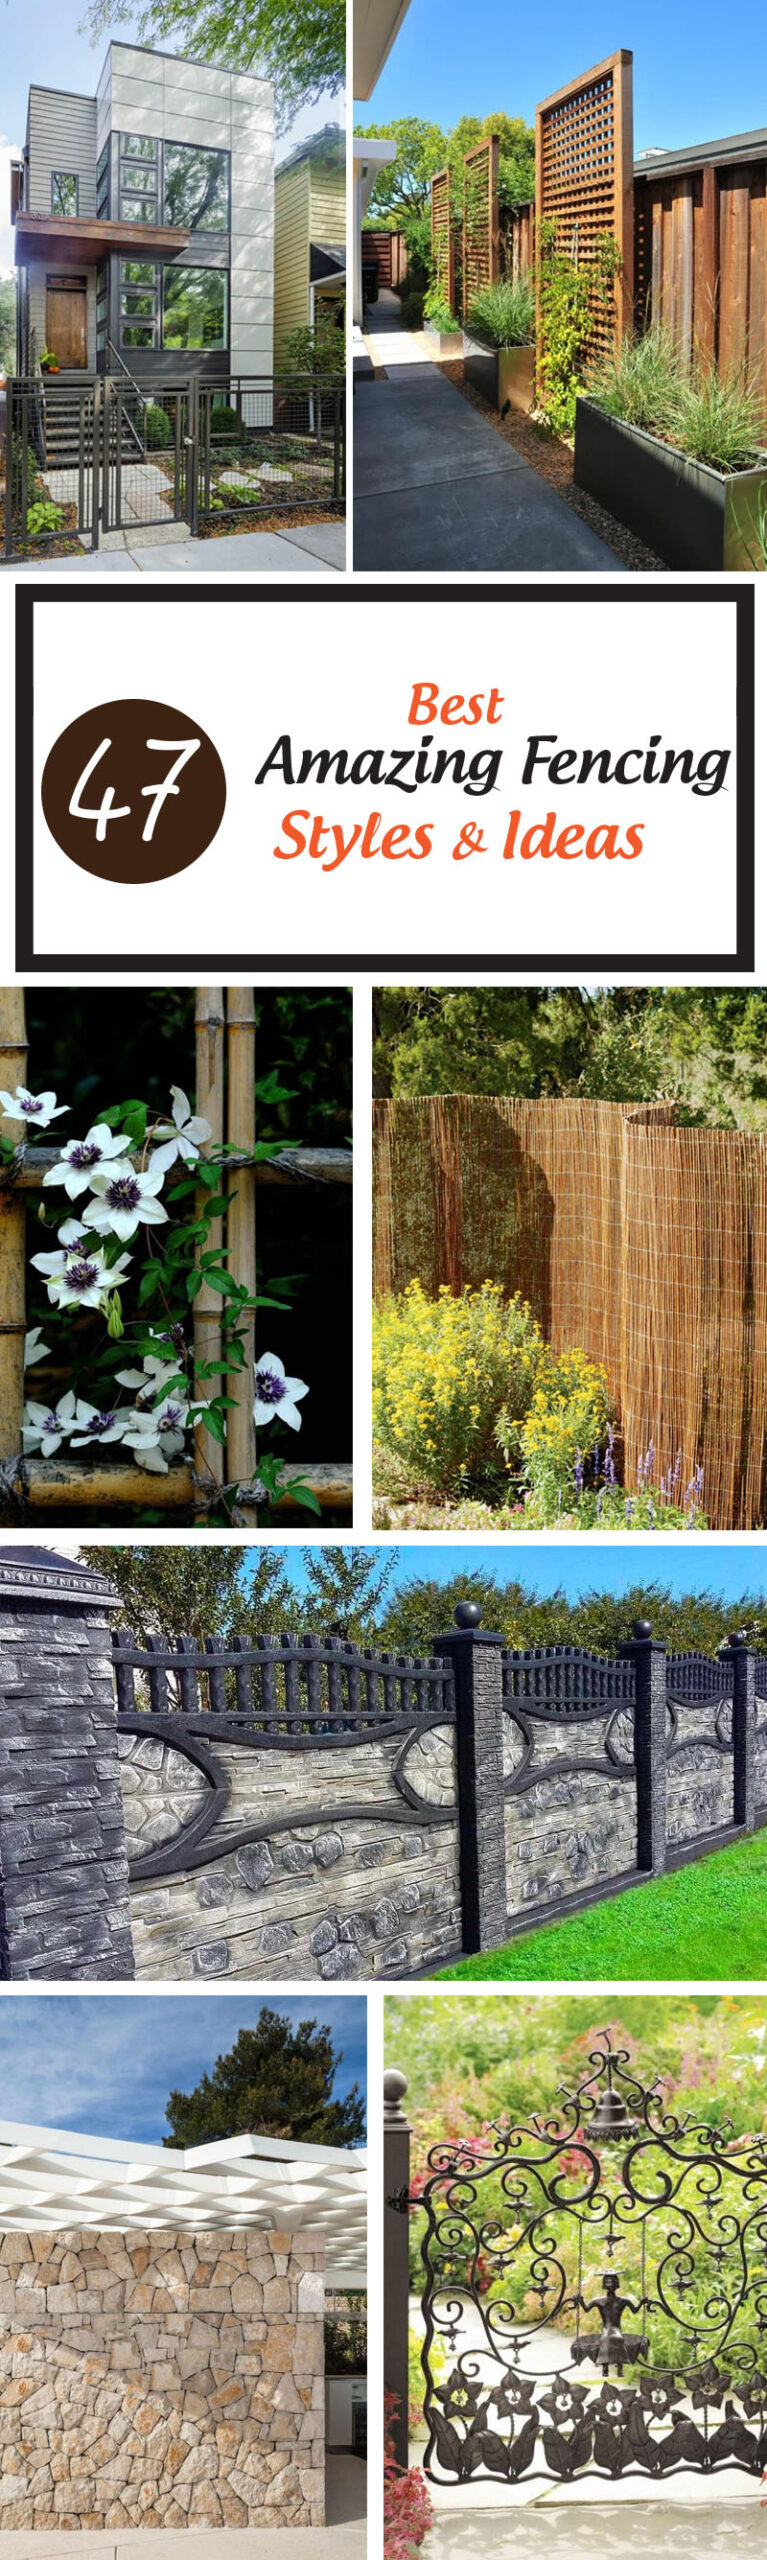 best fencing styles and ideas